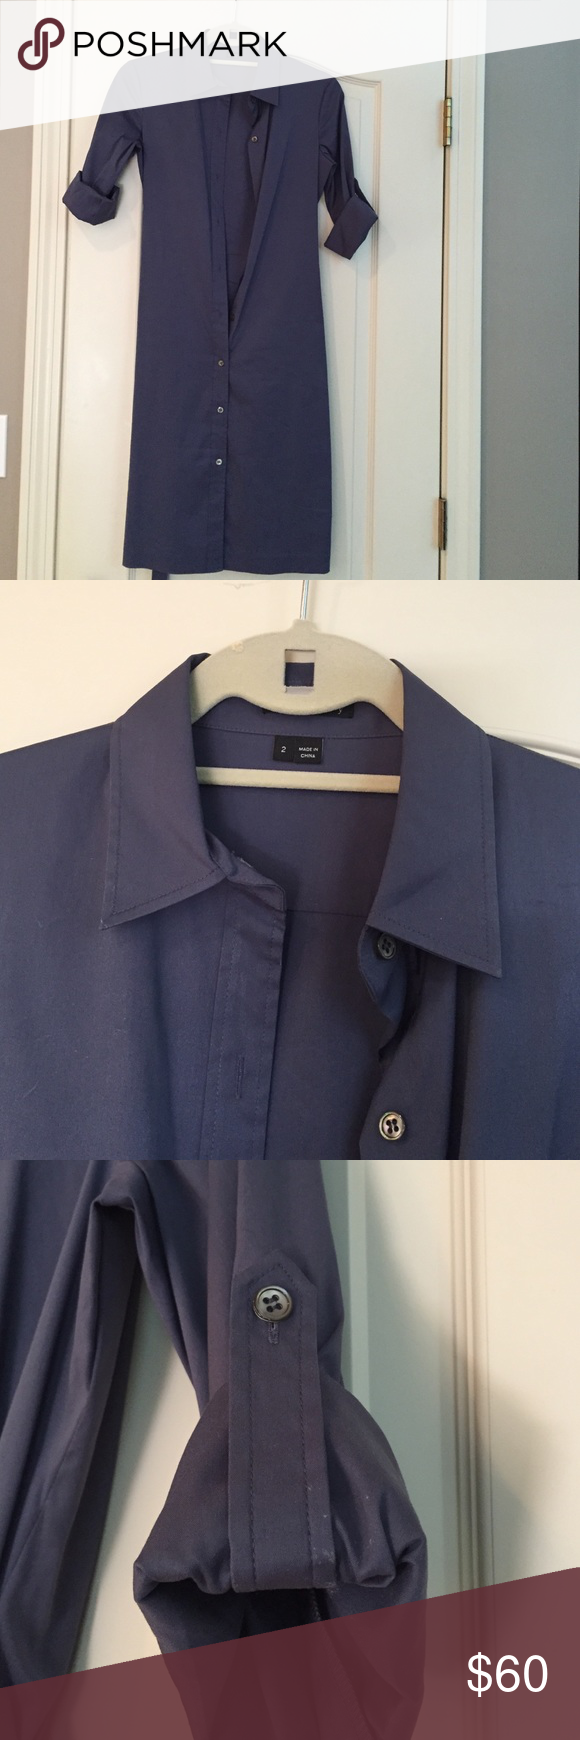 Dress Shirt dress with self-tie belt, rolled up sleeves with button. Perfect condition Theory Dresses